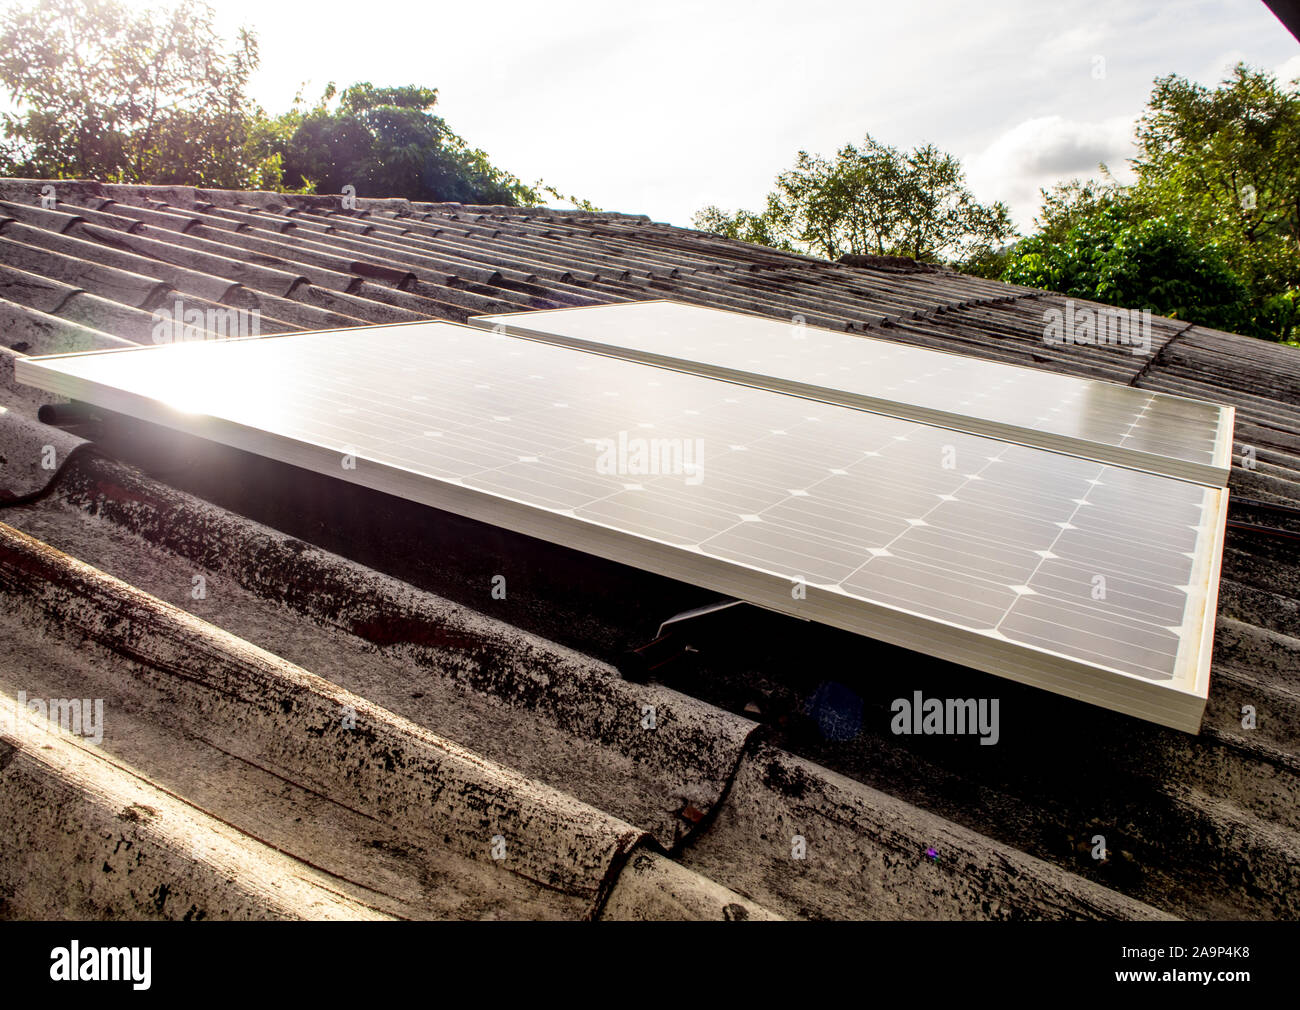 Small Solar Panel On Roof Of House In The Countryside Stock Photo